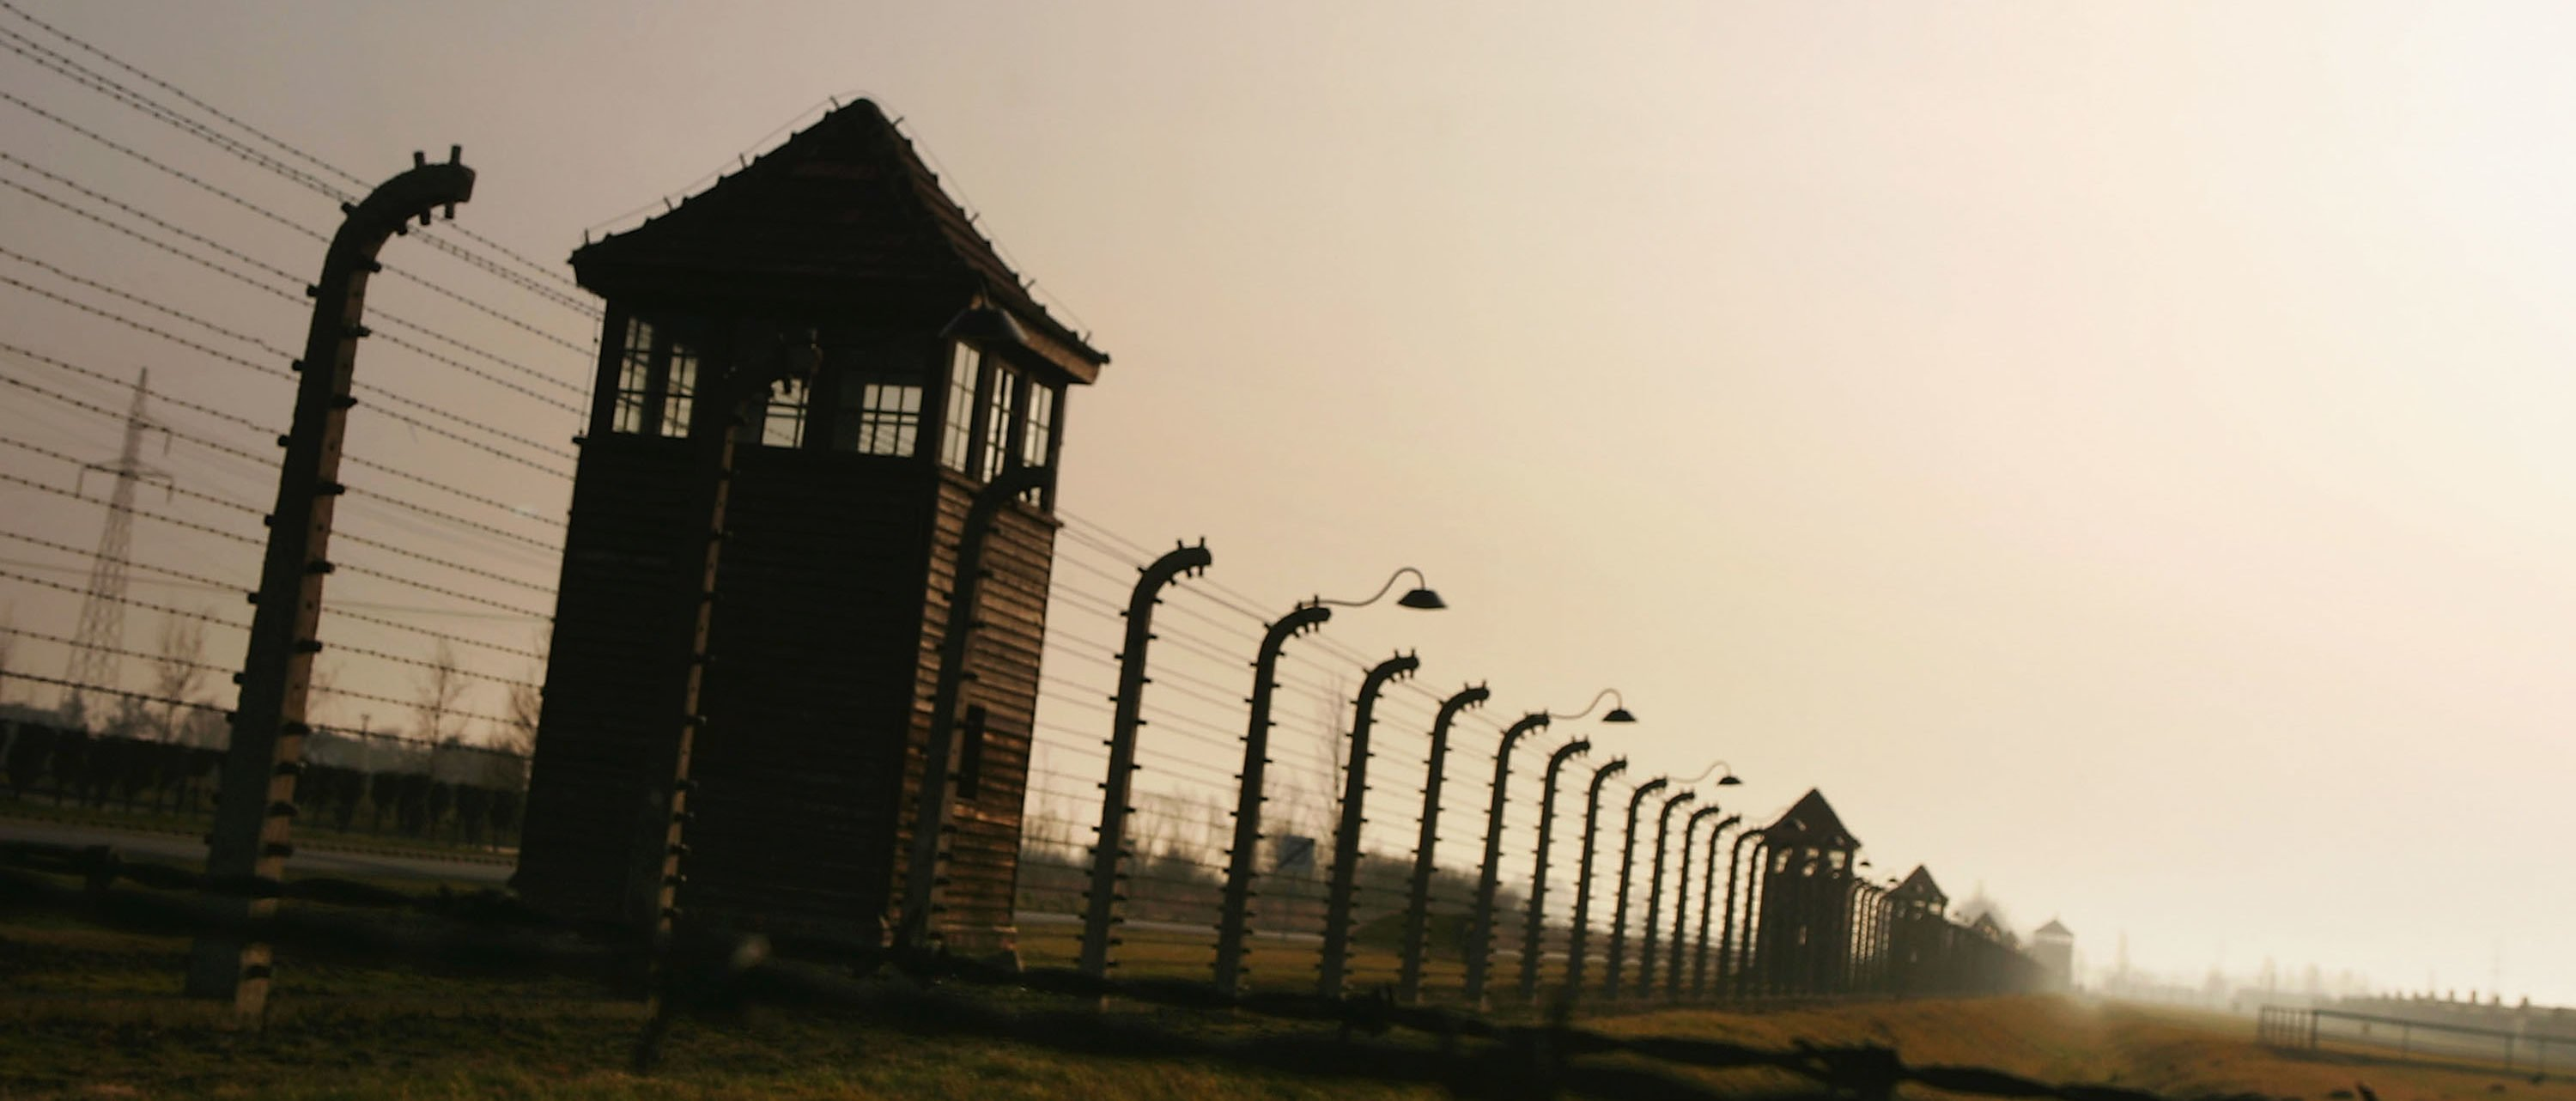 BREZEZINKA, POLAND - DECEMBER 10: Watch towers surrounded by mulitiple high voltage fences, December 10, 2004 at Auschwitz II - Birkenau which was built in March 1942 in the village of Brzezinka, Poland. The camp was liberated by the Soviet army on January 27, 1945, January 2005 will be the 60th anniversary of the liberation of the extermination and concentration camps, when survivors and victims who suffered as a result of the Holocaust will commemorated across the world. (Photo by Scott Barbour/Getty Images)